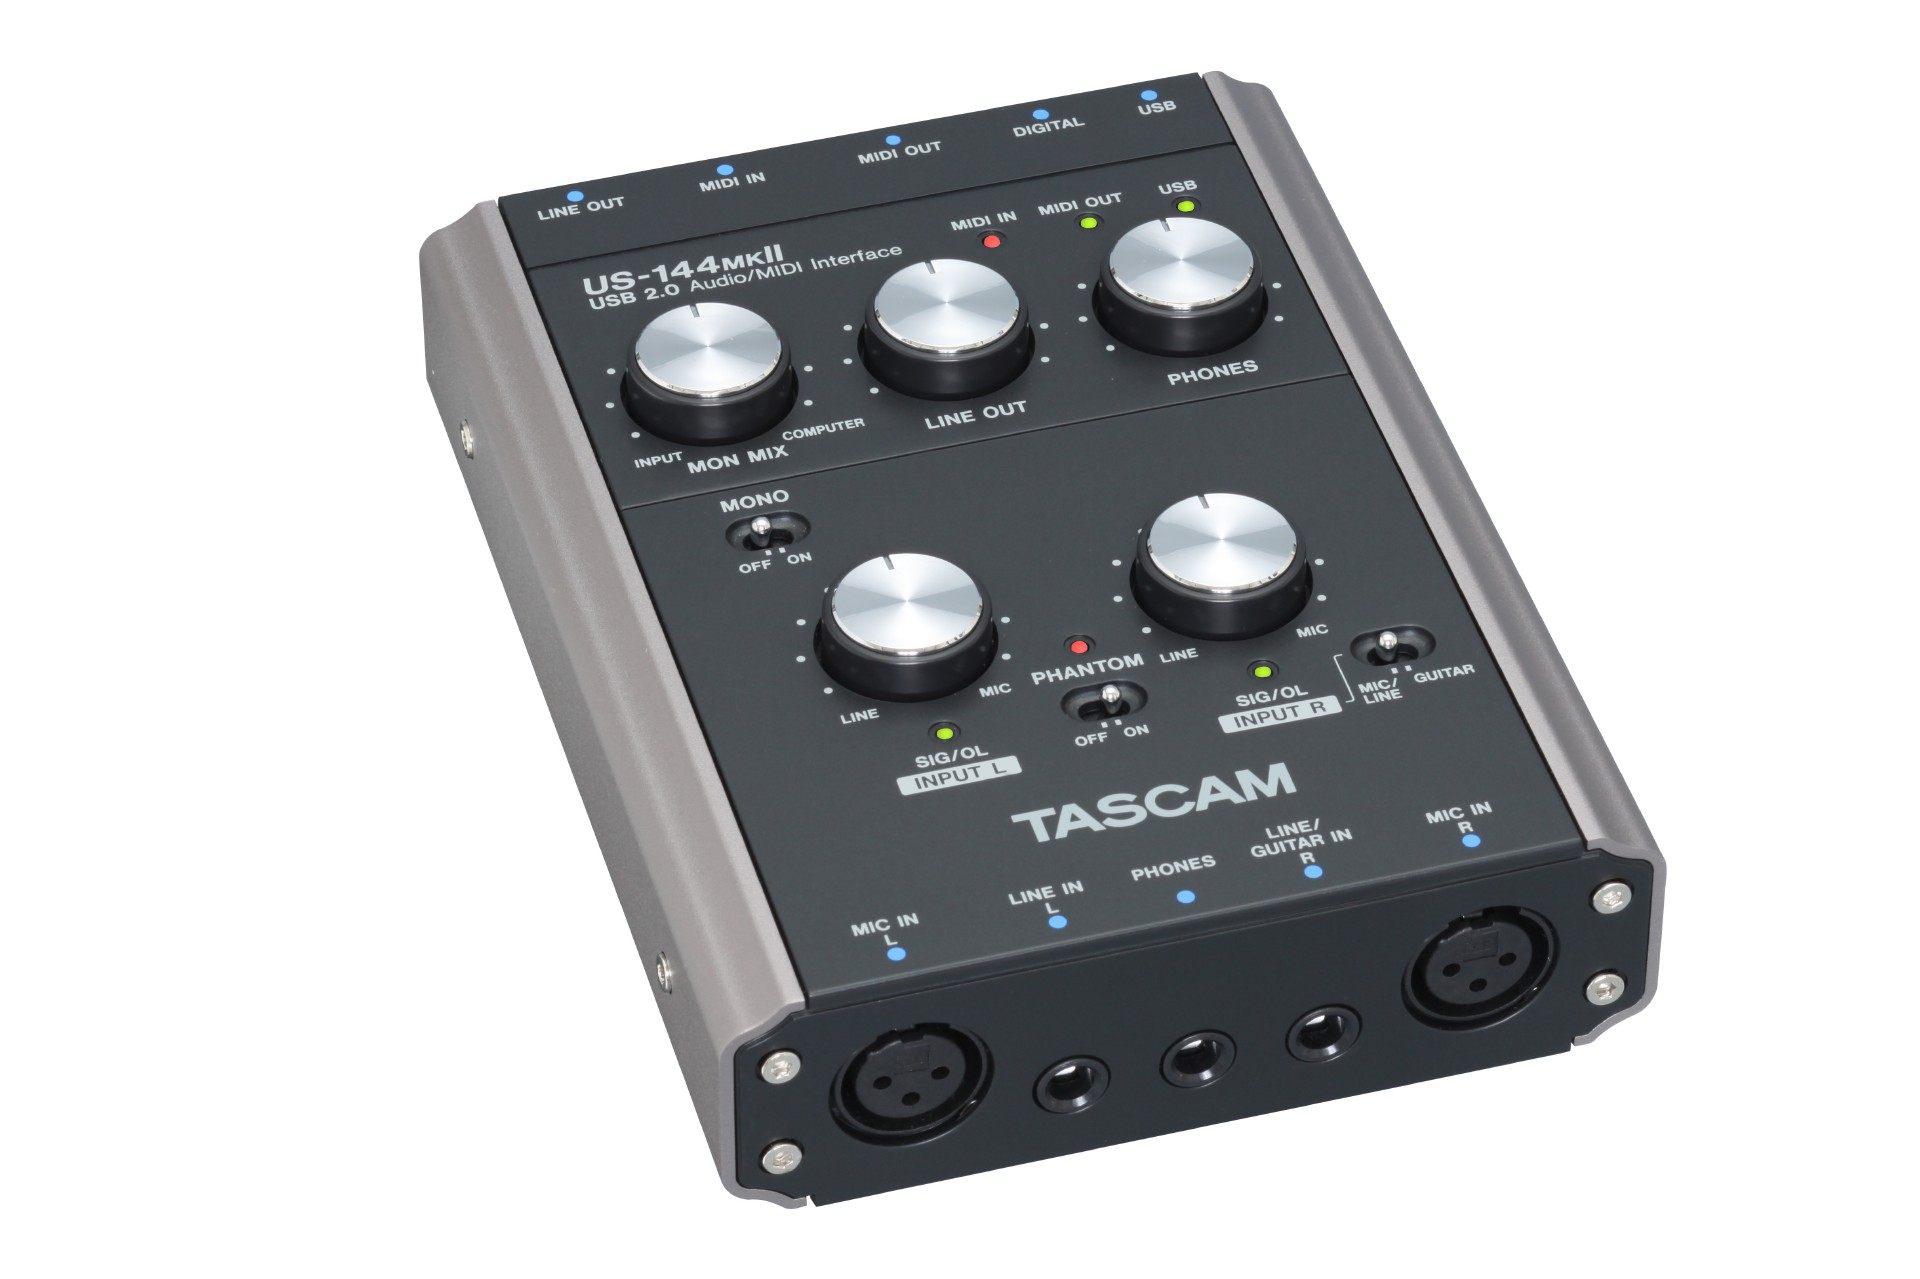 US-144MKII | FEATURES | TASCAM - United States